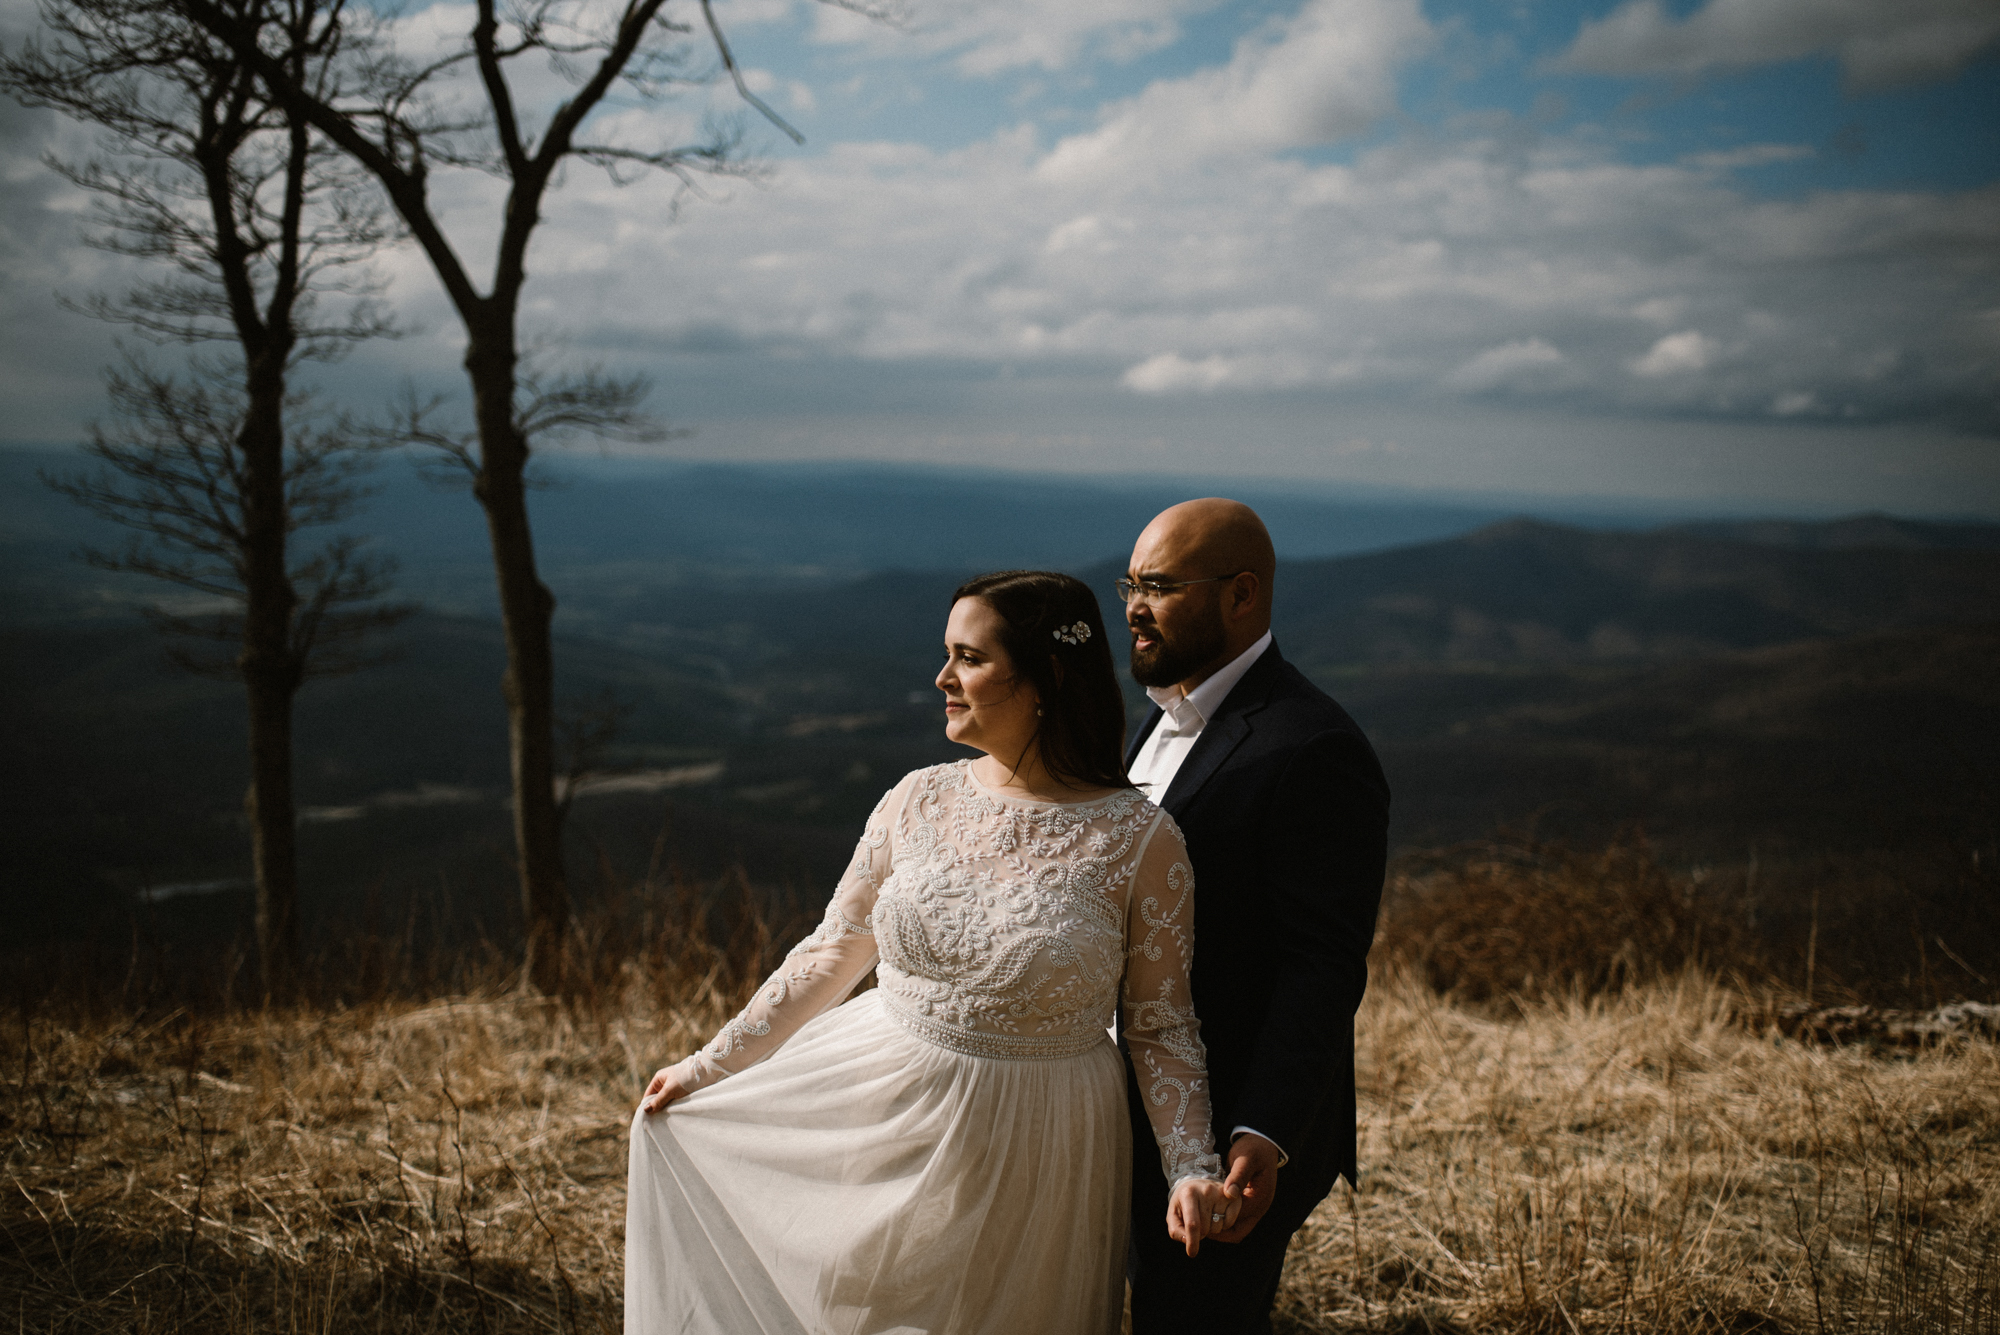 Emma and Jeddah - Intimate Luray Wedding - Shenandoah National Park Wedding - Adventure Elopement in Virginia - Shenandoah National Park Elopement_48.jpg